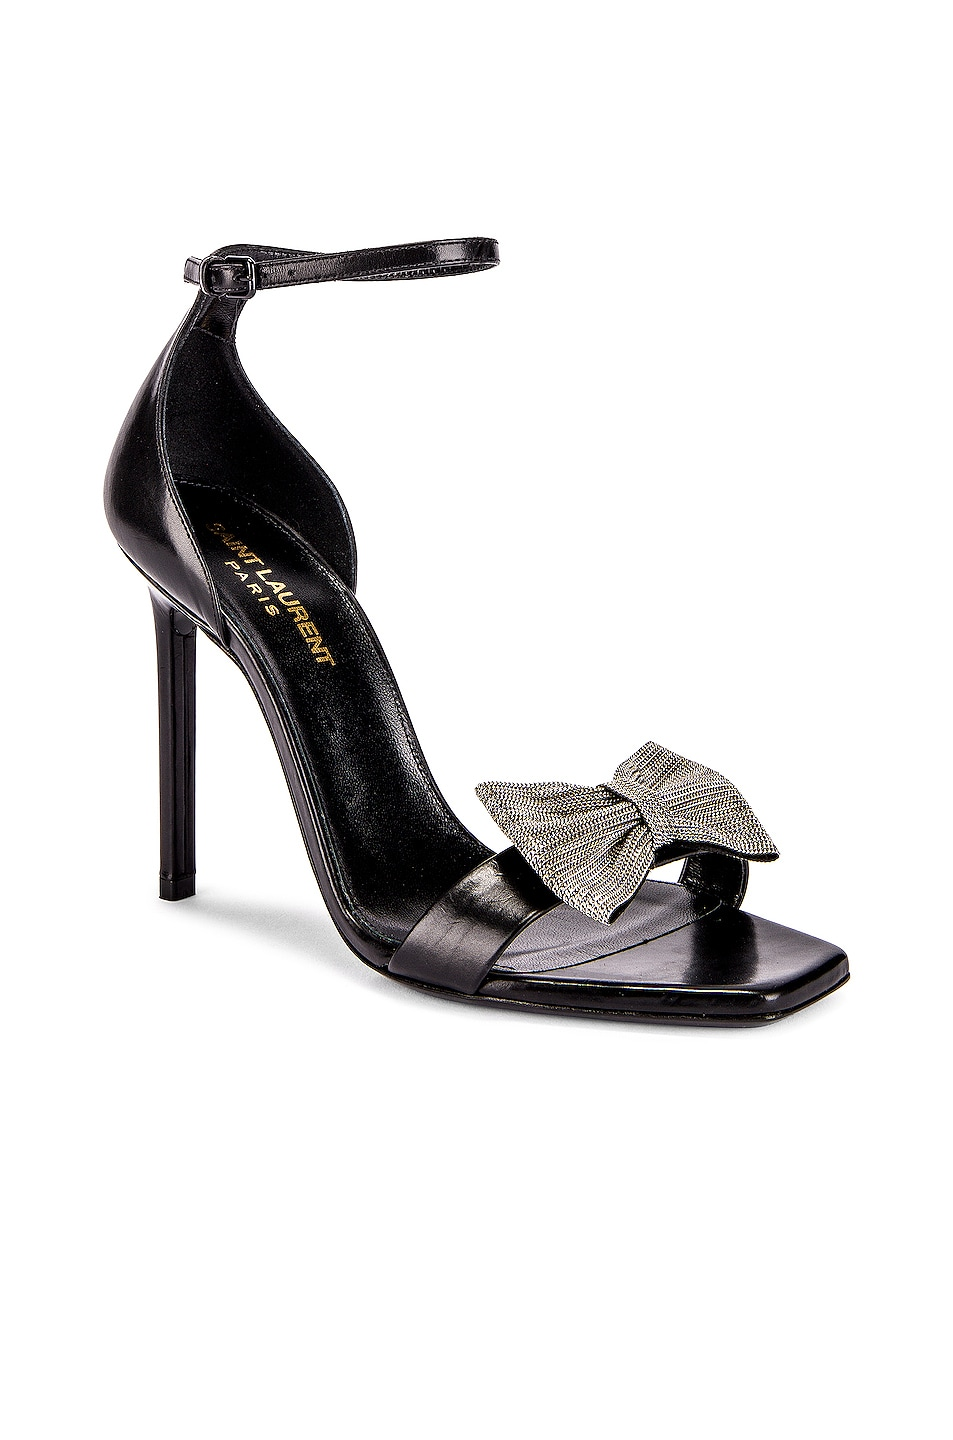 Image 2 of Saint Laurent Amber Bow Ankle Strap Heels in Black